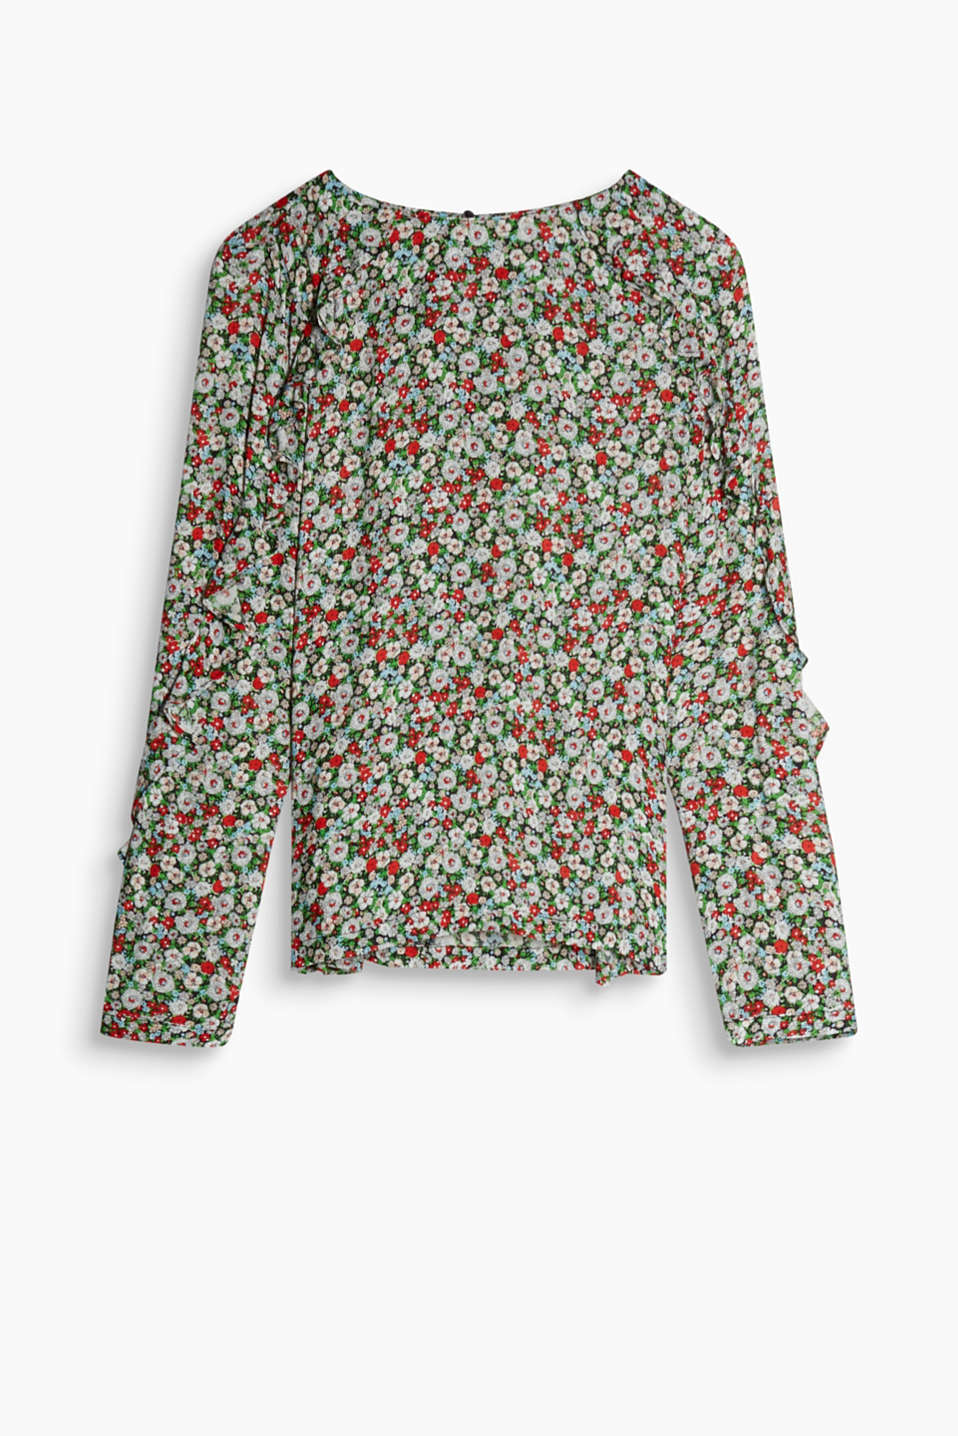 Blouse with a feminine floral print and frills made of pure viscose